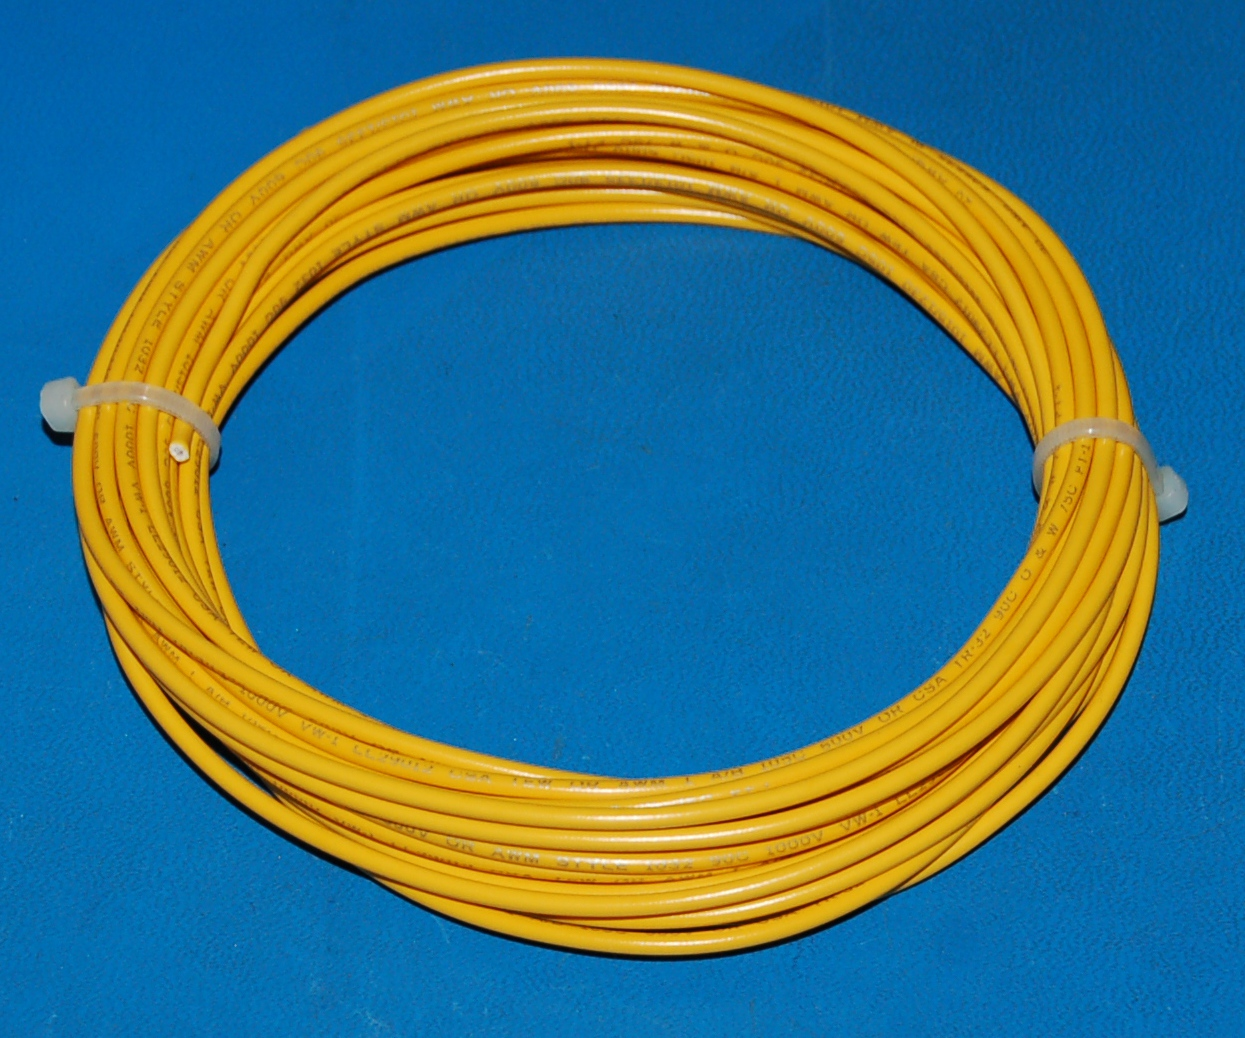 Solid Tinned Copper Wire, 600V, #20 AWG x 25' (Yellow)